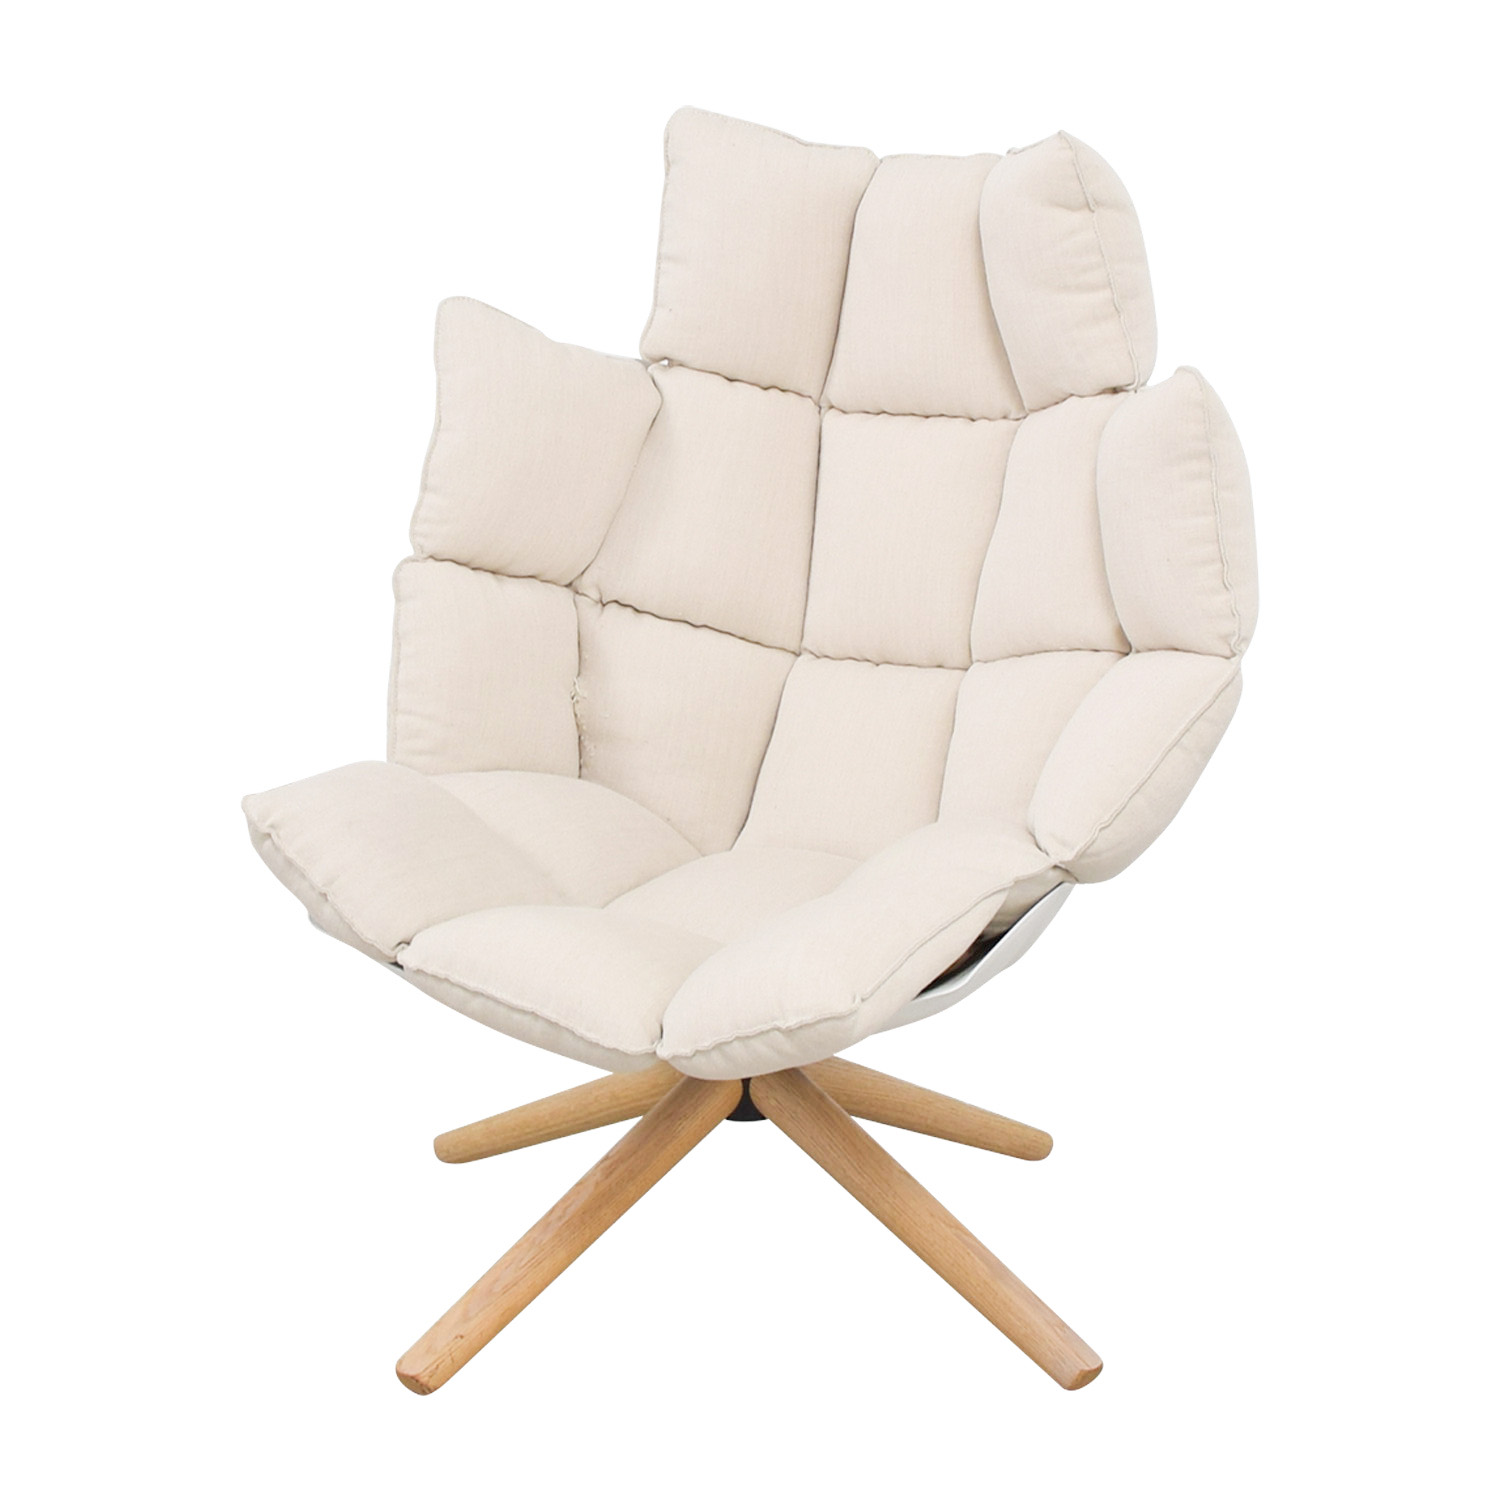 87% OFF - B & B Italia B&B Italia Husk Beige Armchair / Chairs